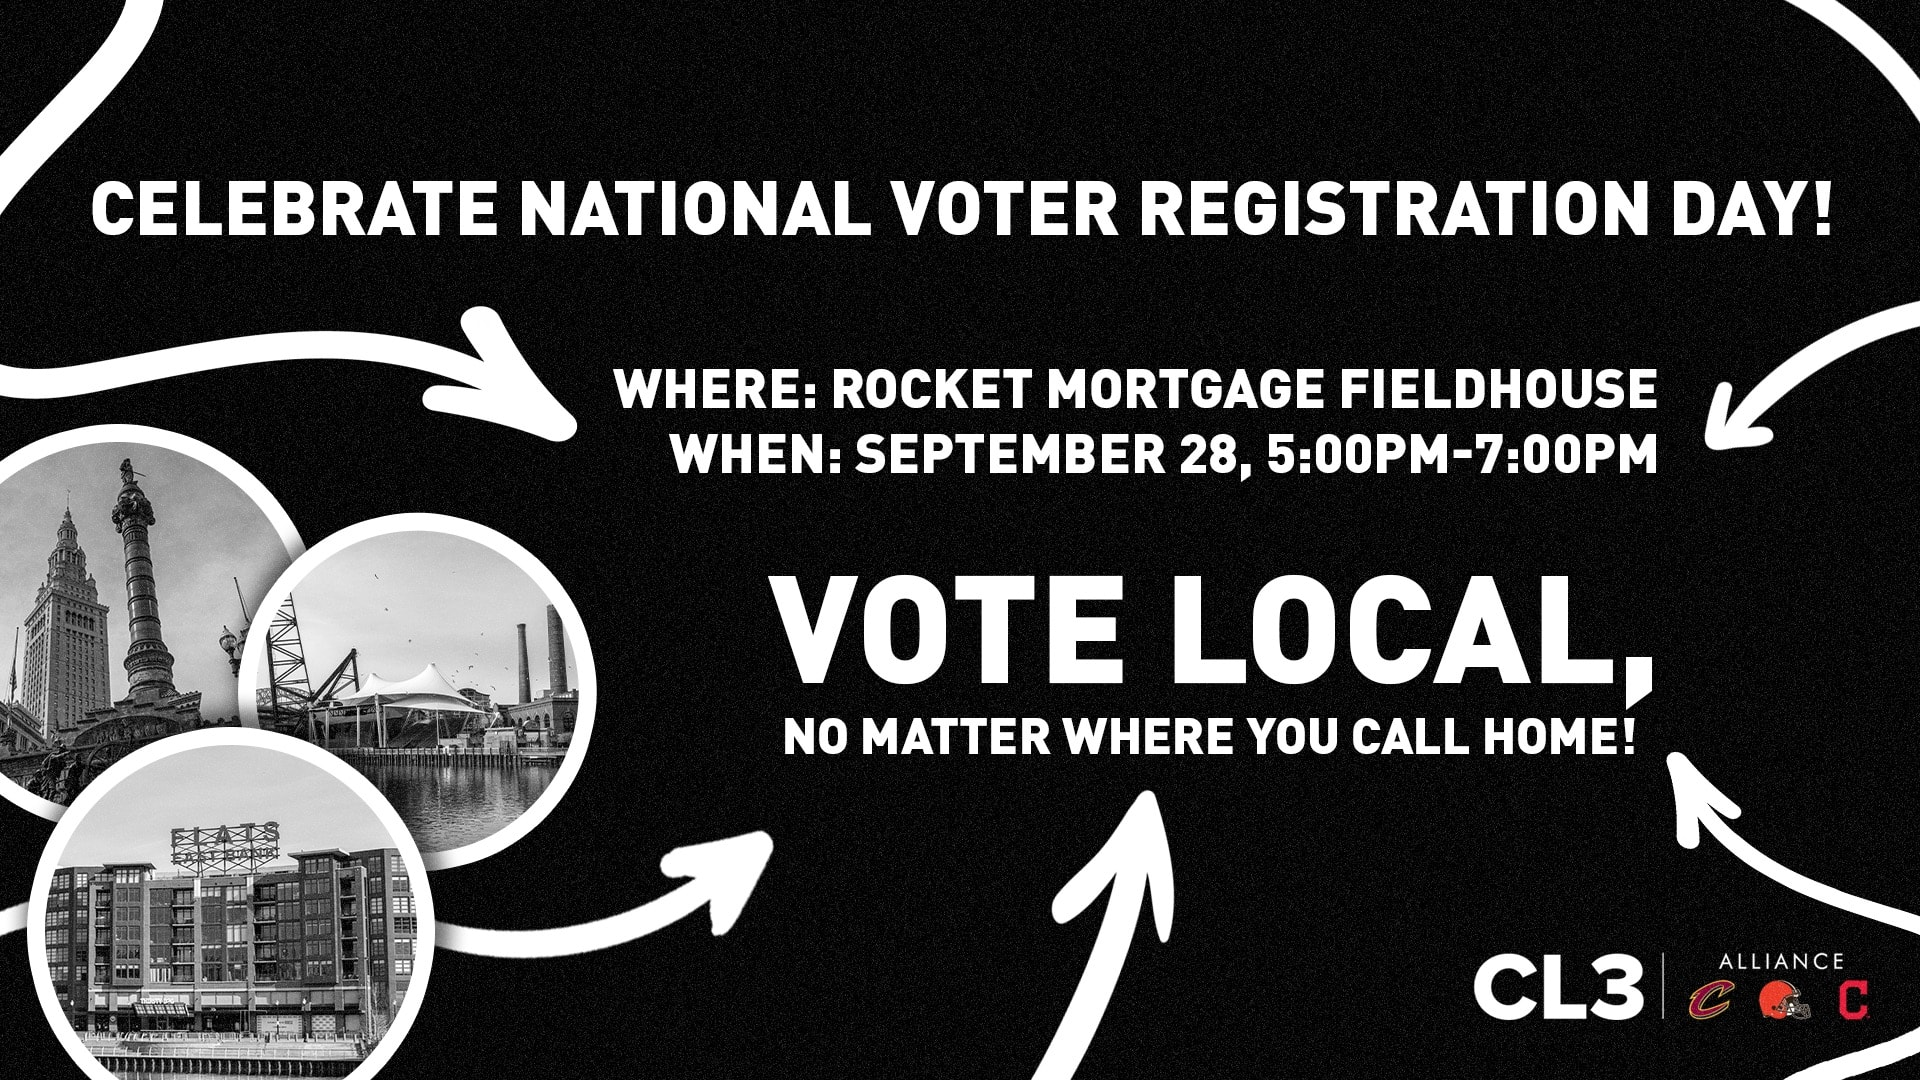 Vote Local at Rocket Mortgage FieldHouse